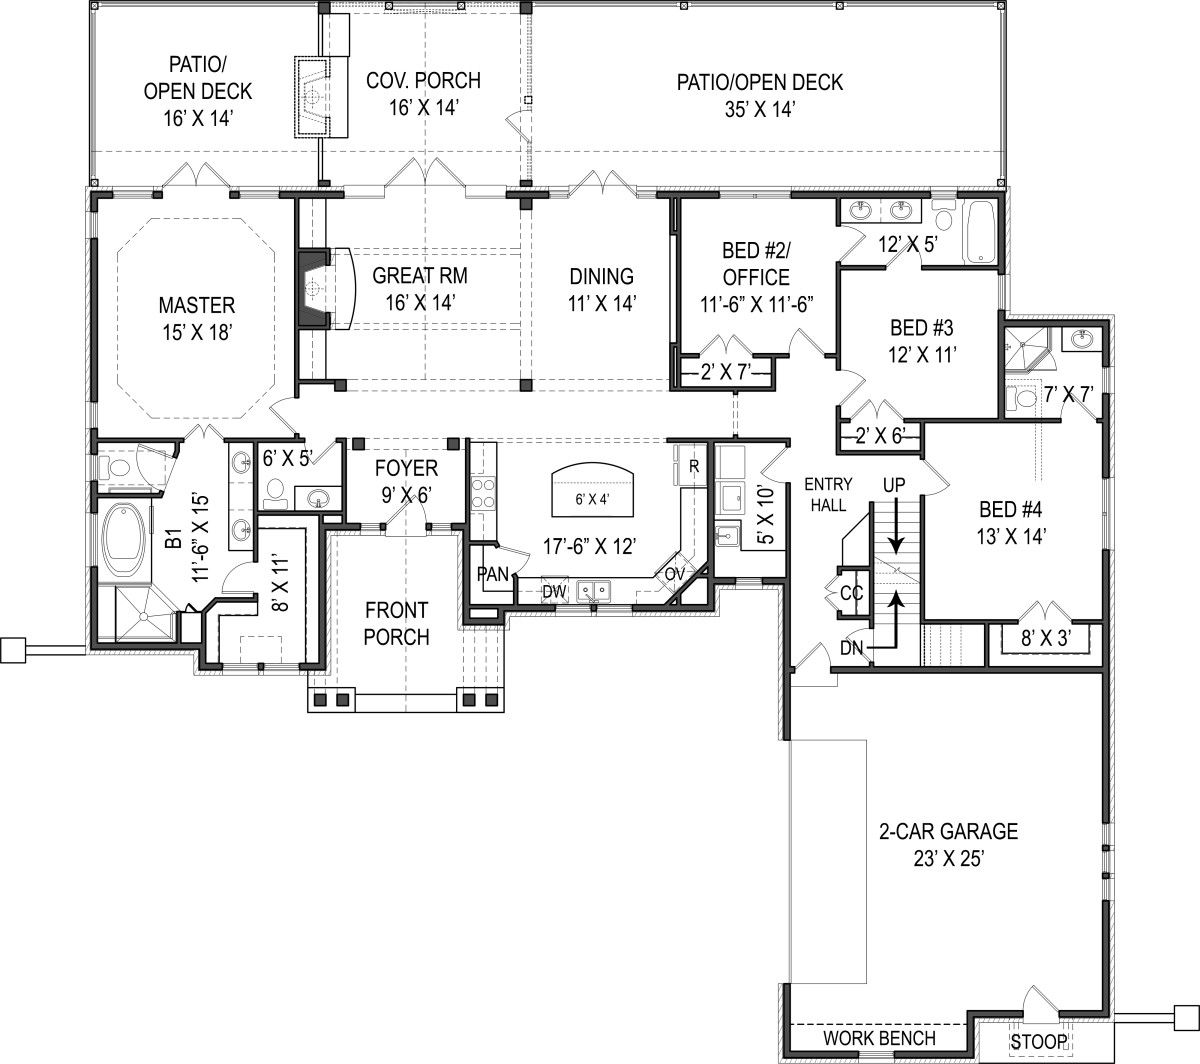 best selling house floor plans selling home plans ideas for sale best selling craftsman house plan craftsman